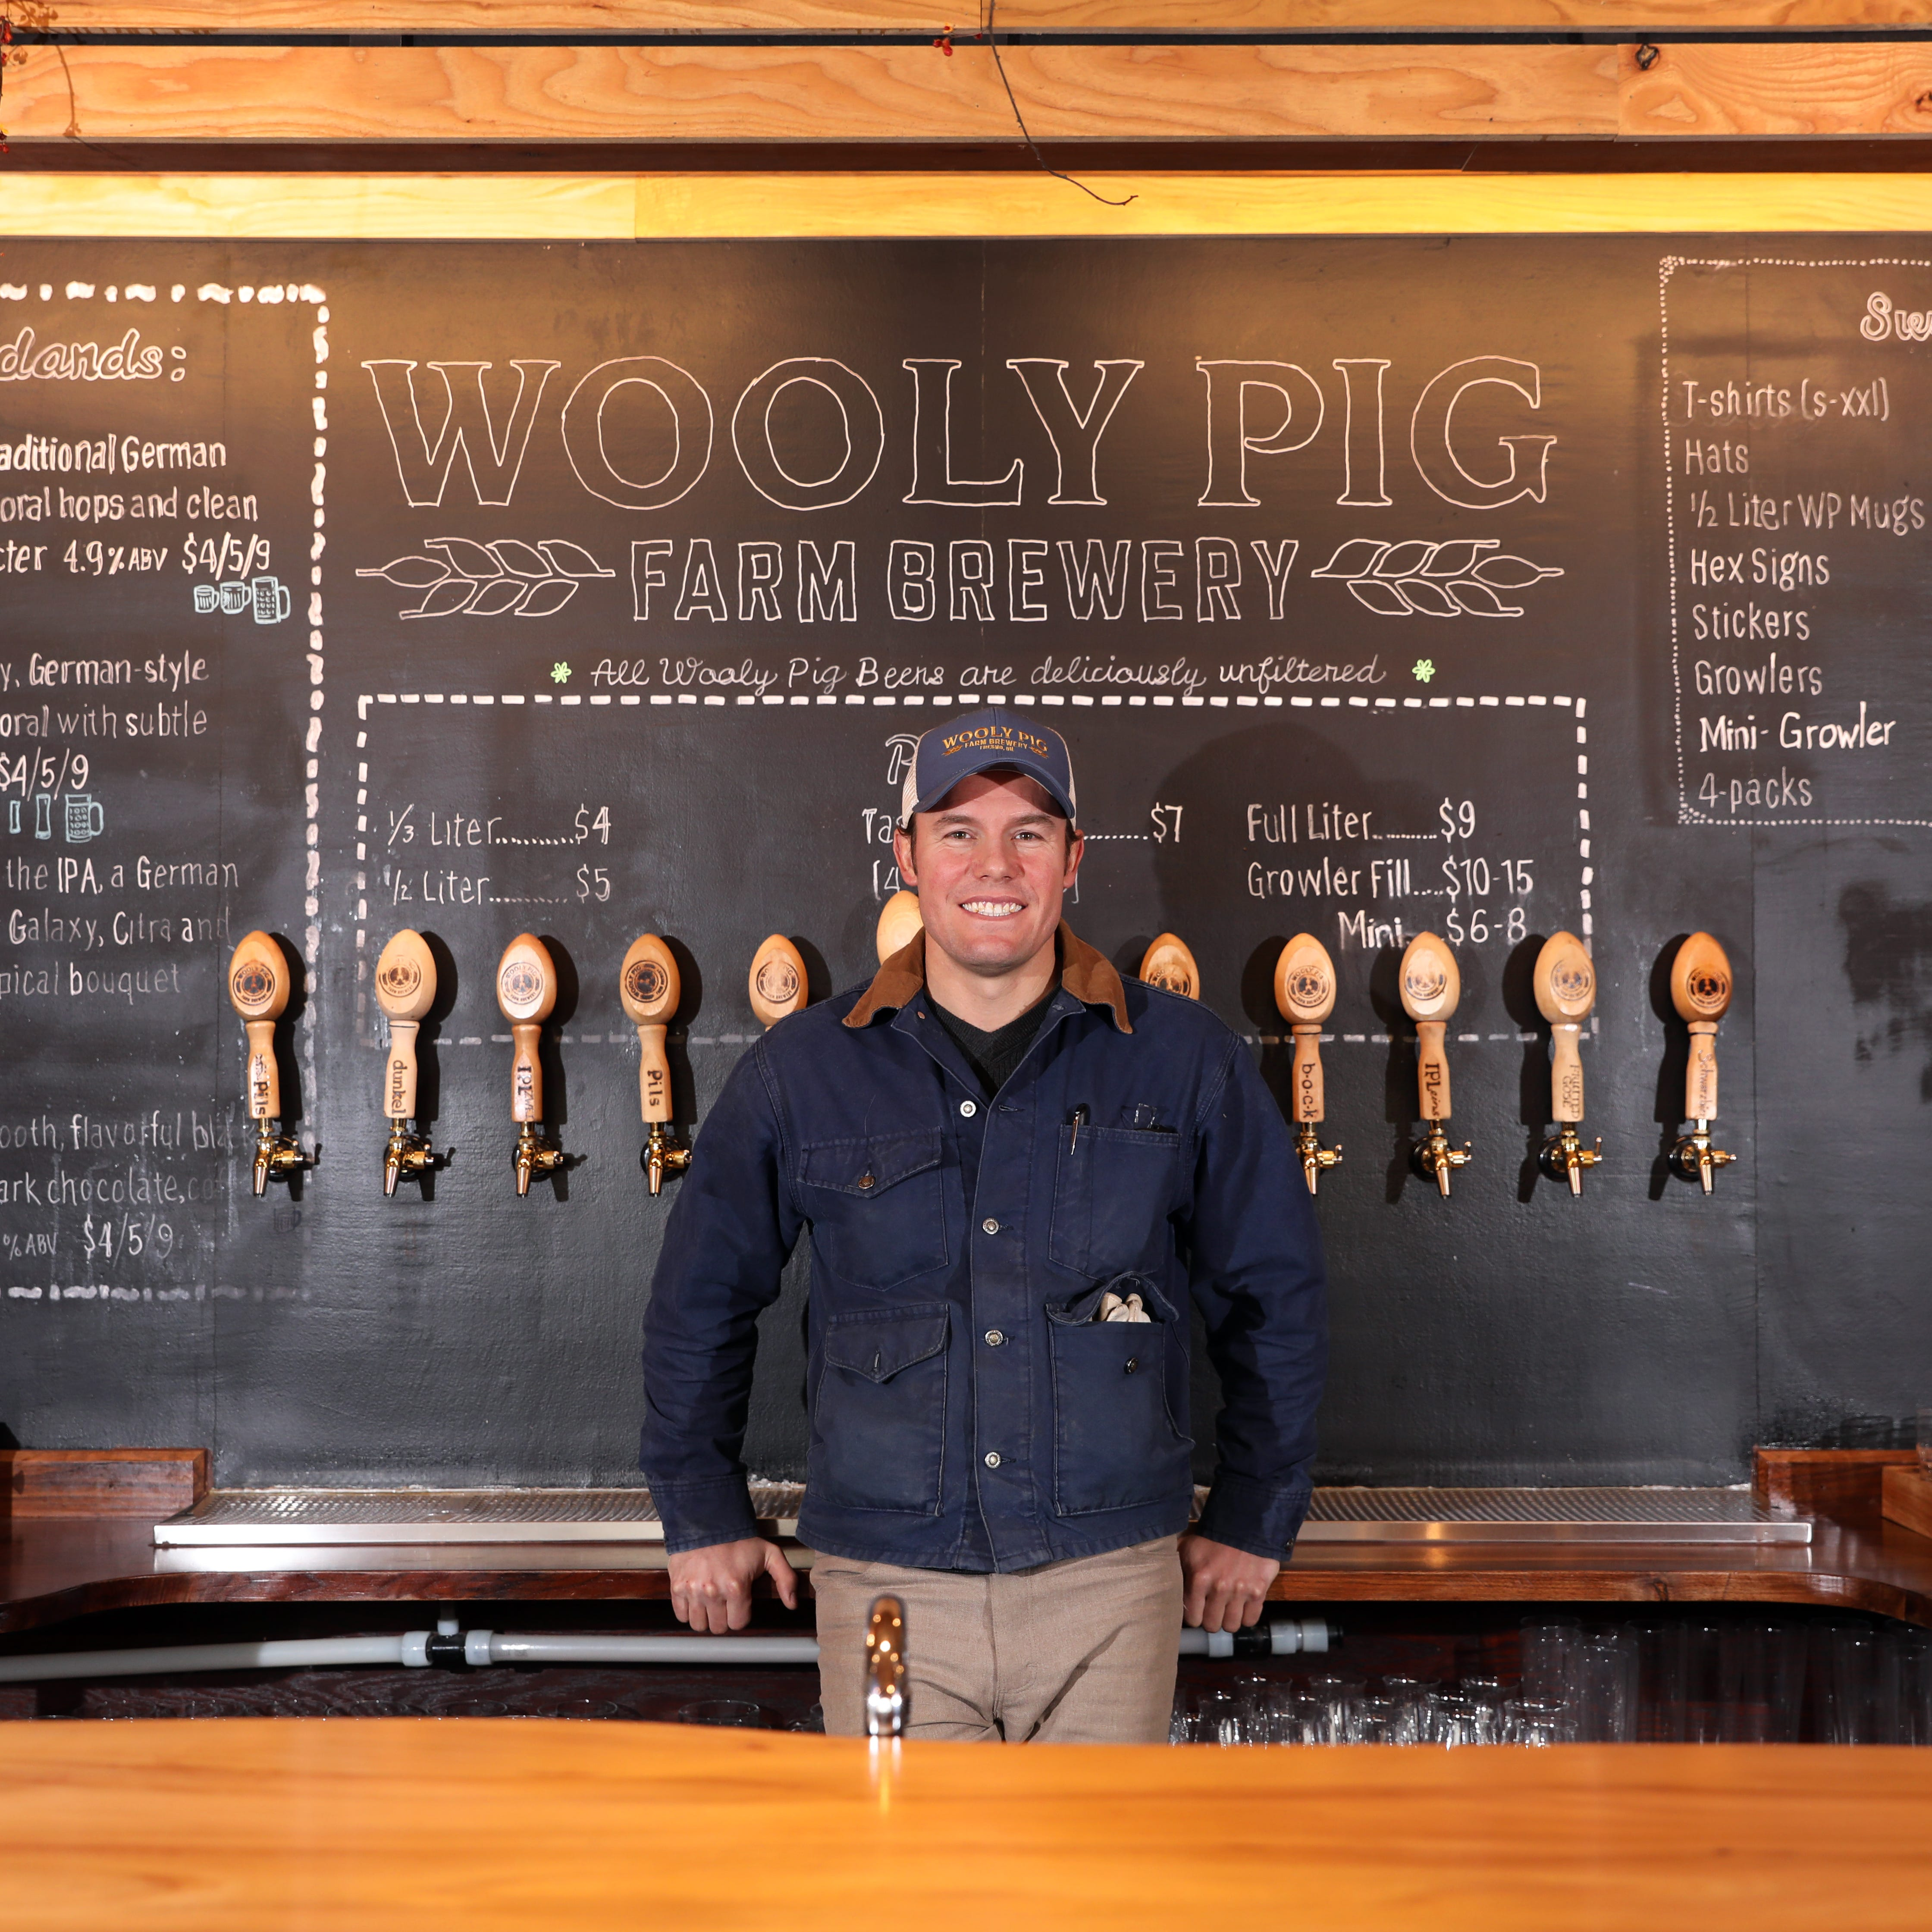 Wooly Pig Farm Brewery - a unique name with unique beer